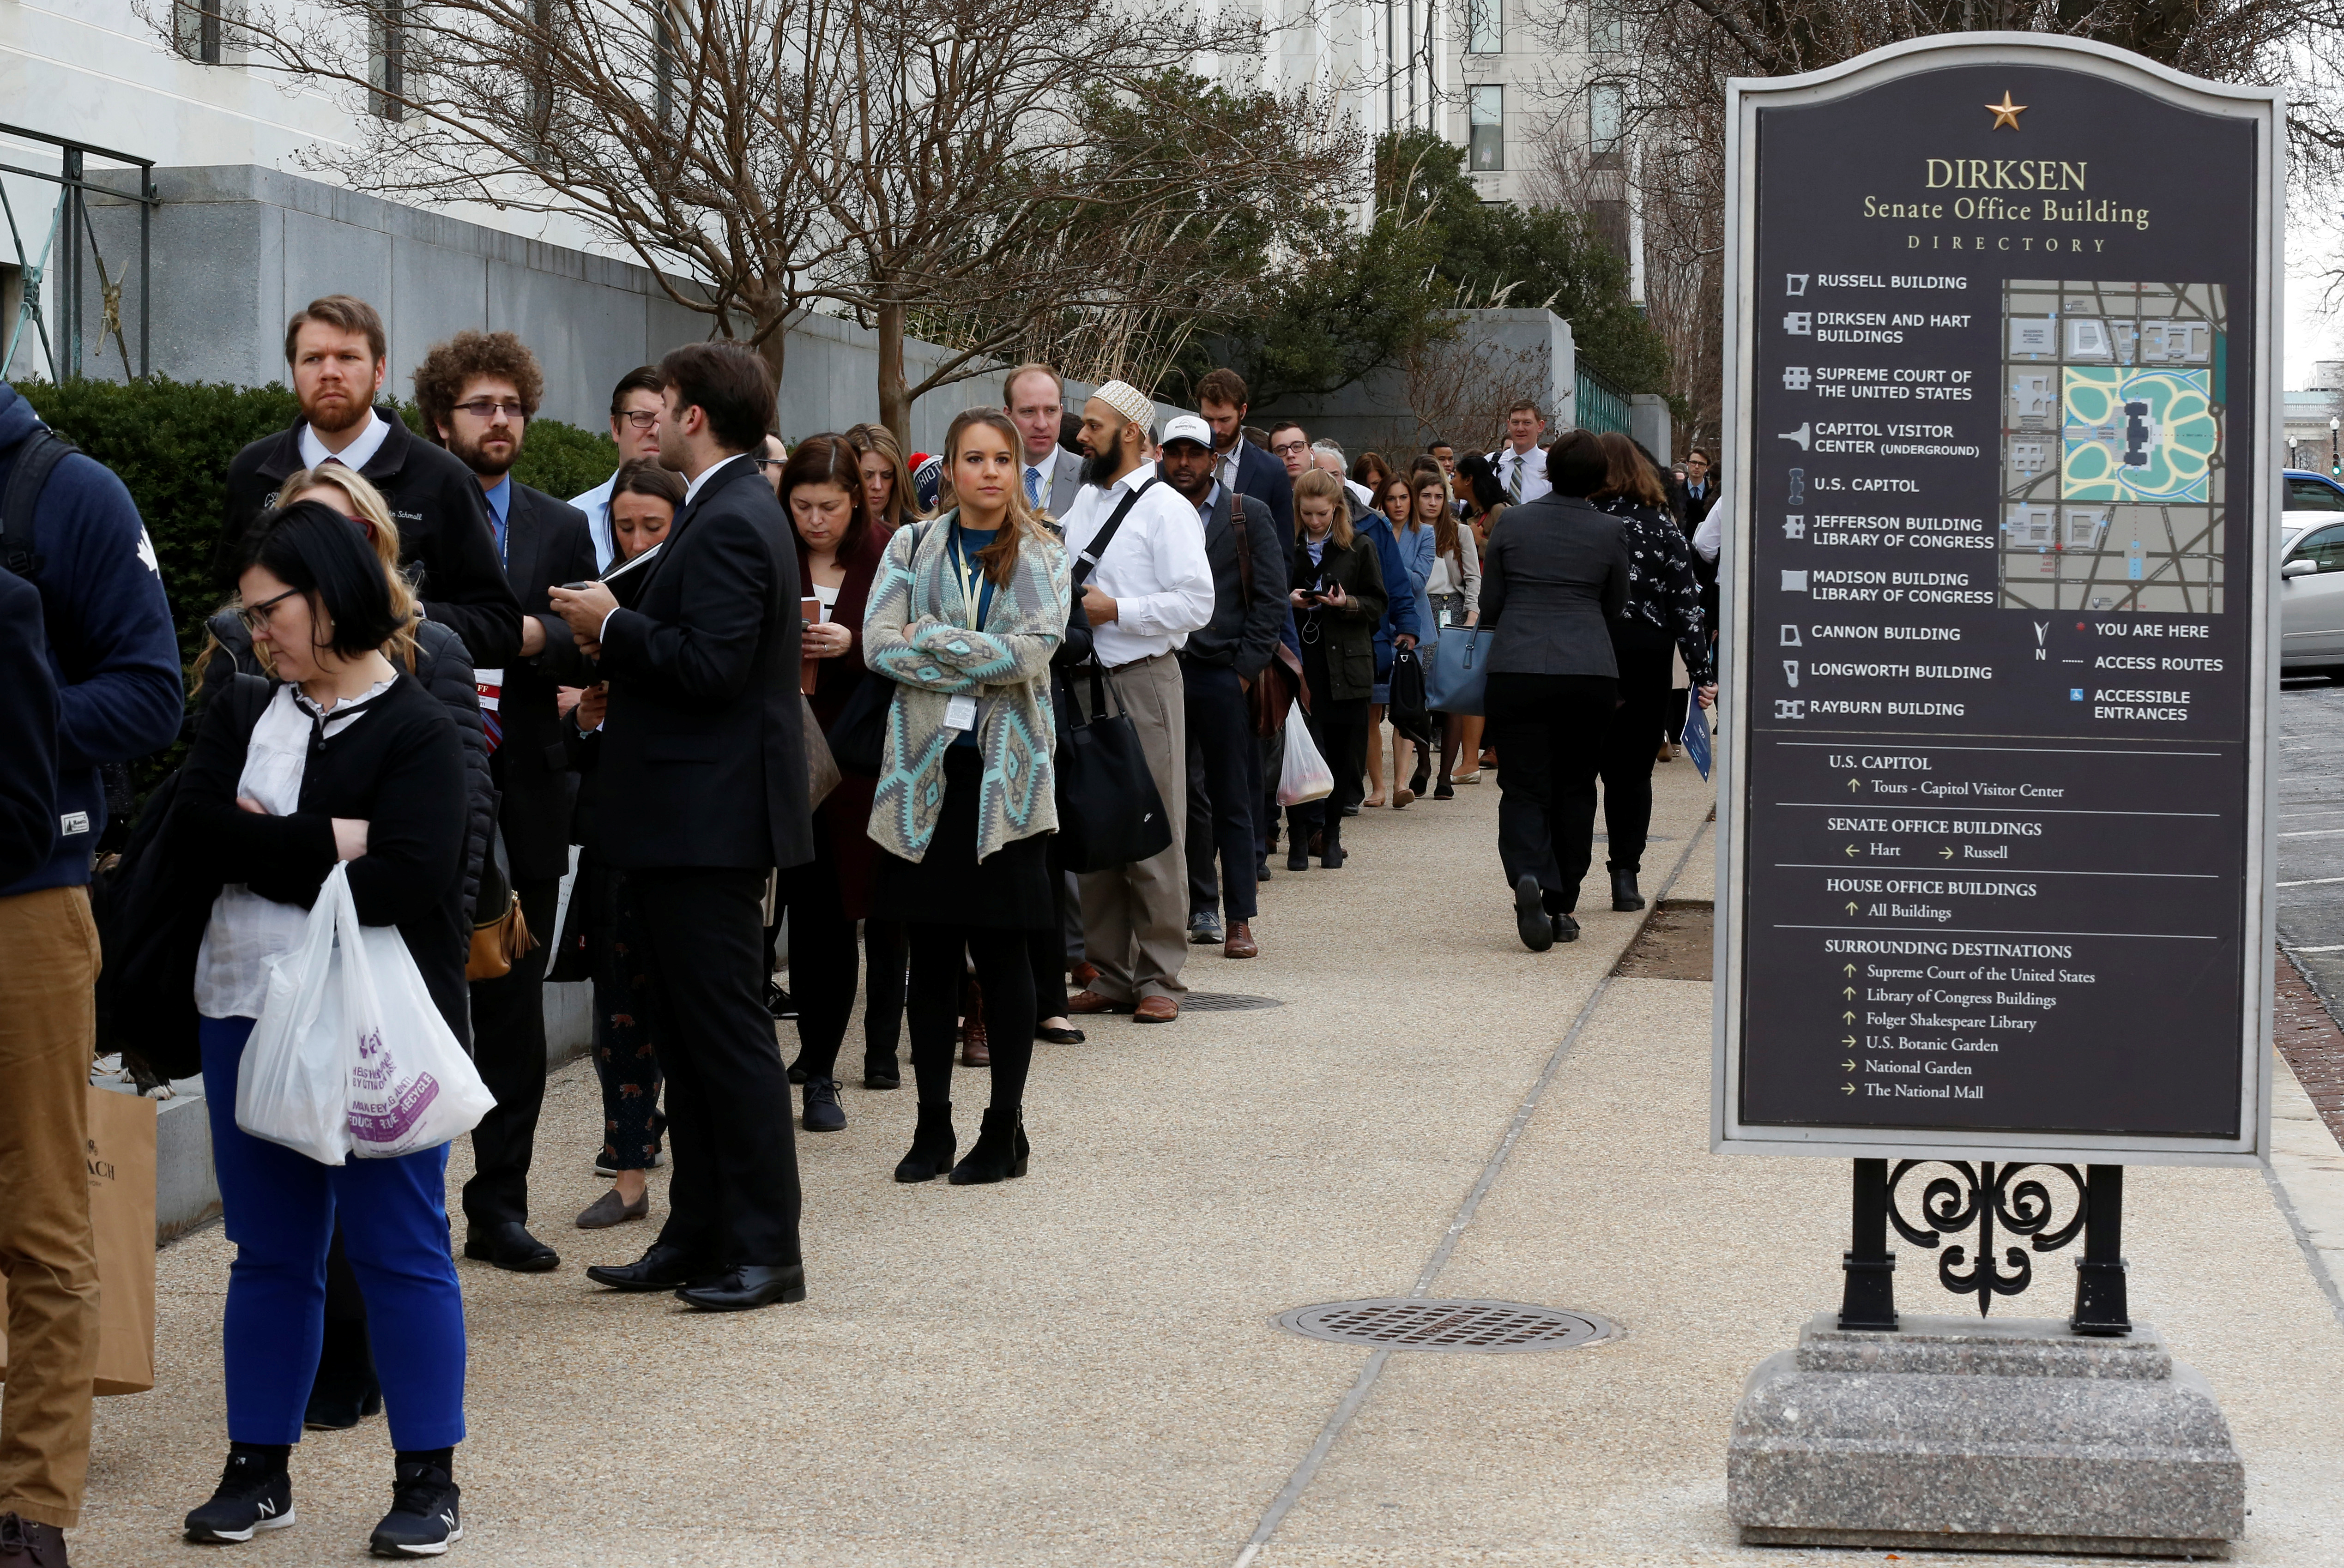 Congressional staffers wait in an excessively long line to enter the Dirksen Senate office building during the third day of a shut down of the federal government in Washington, Jan. 22, 2018.